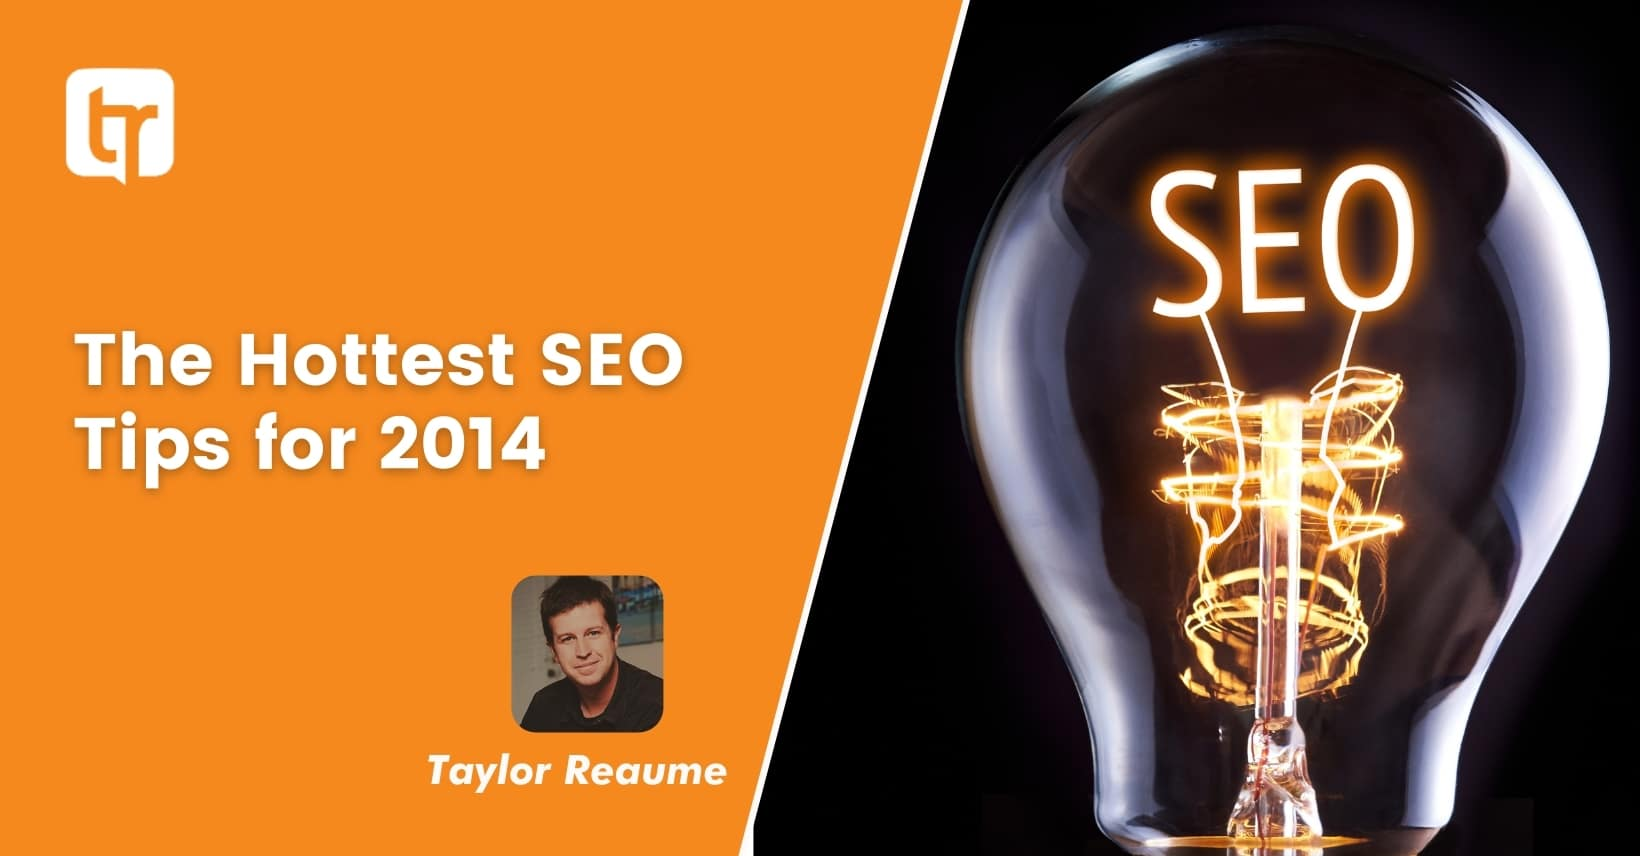 The Hottest SEO Tips for 2014